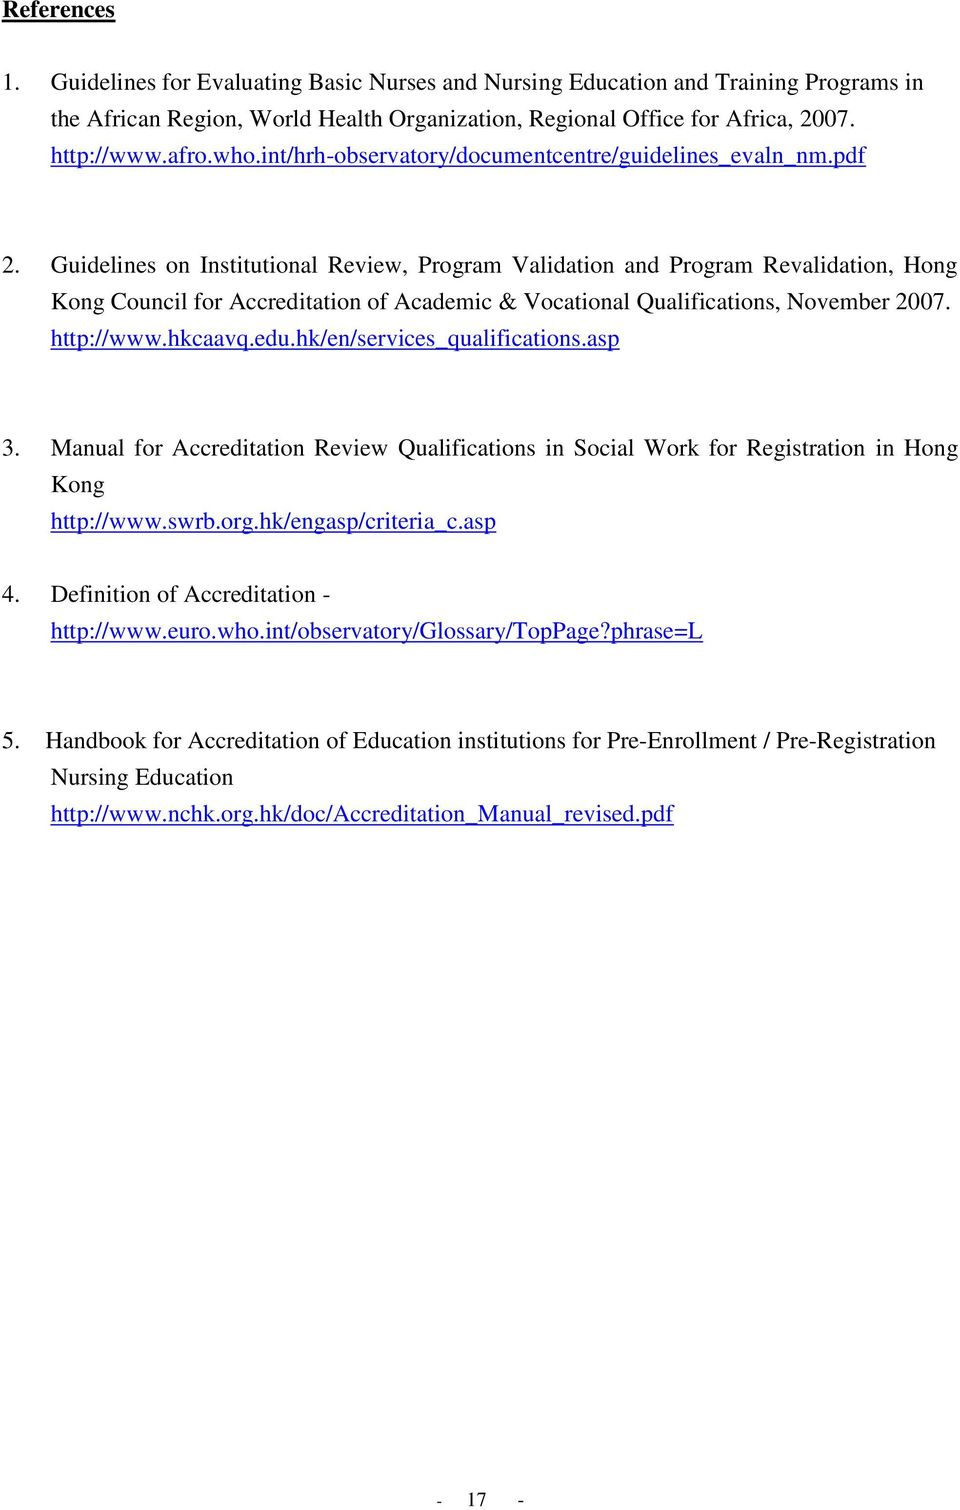 Guidelines on Institutional Review, Program Validation and Program Revalidation, Hong Kong Council for Accreditation of Academic & Vocational Qualifications, November 2007. http://www.hkcaavq.edu.